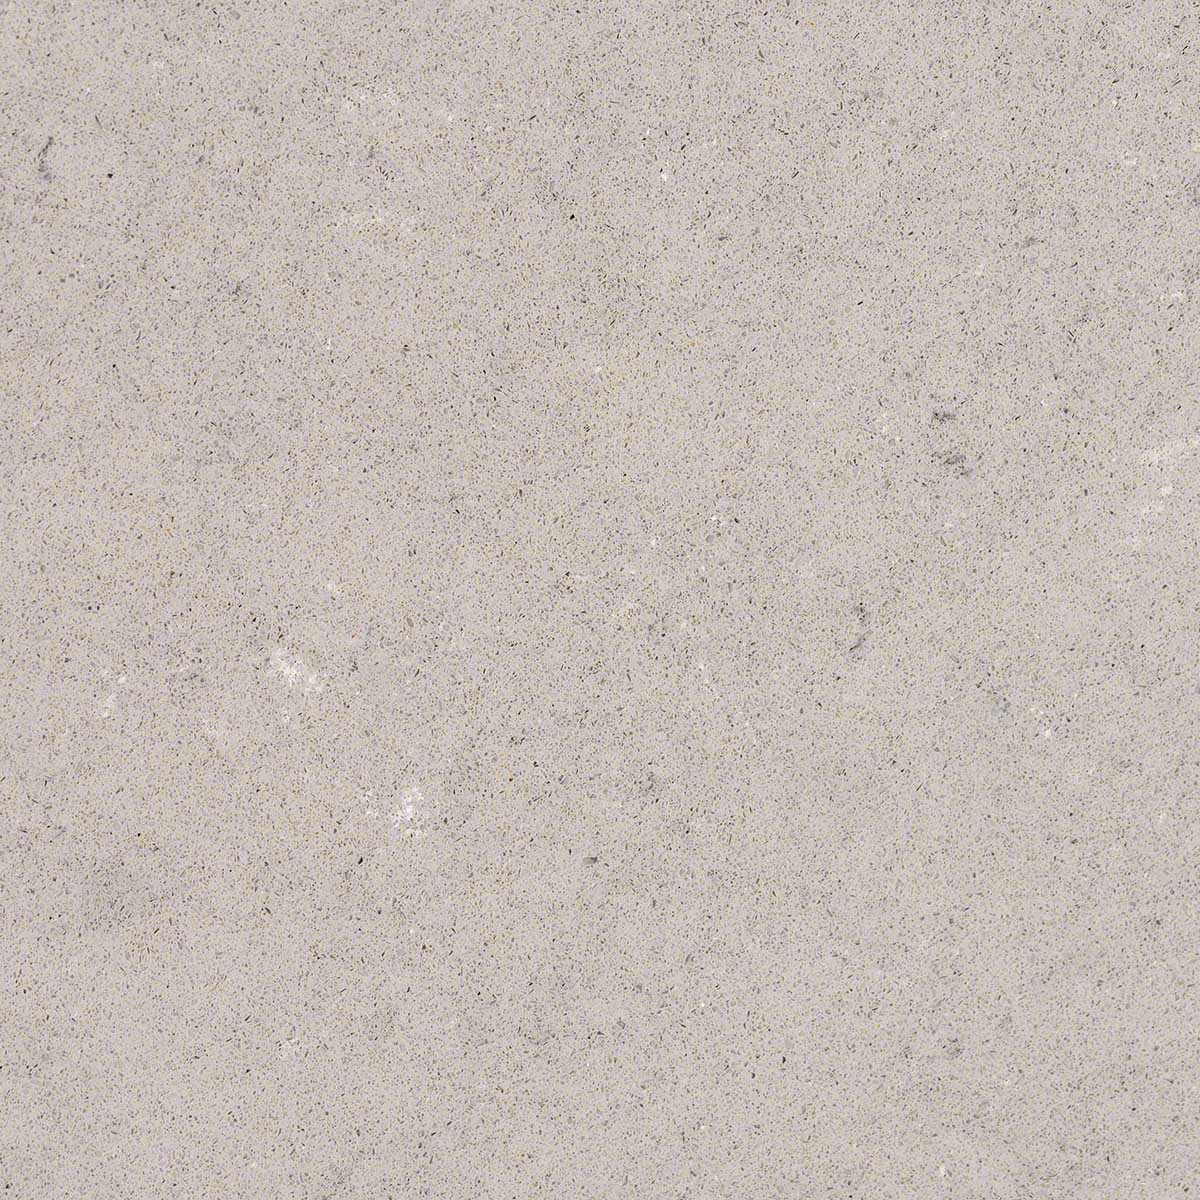 Taupe Quartz Countertop Q Quartz From Msi Keystone Granite Inc Oregon